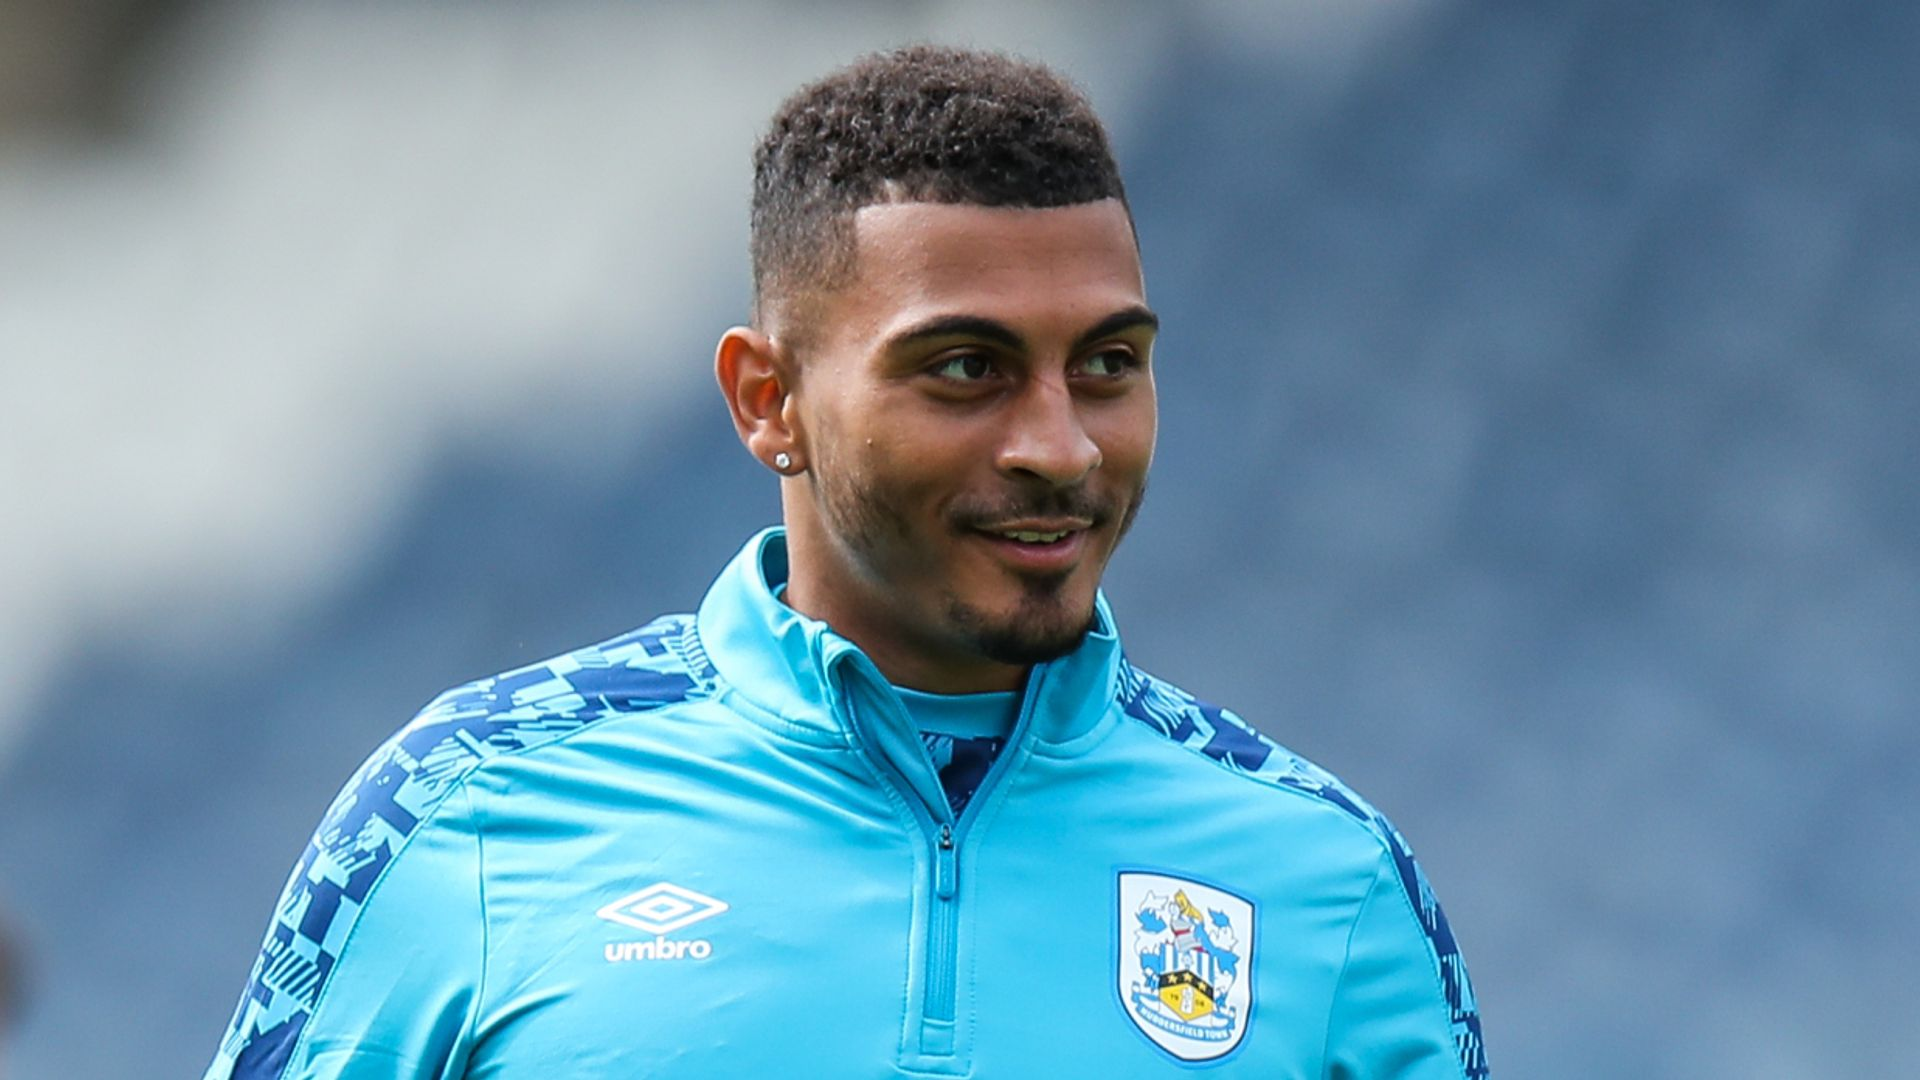 West Brom complete signing of Grant from Huddersfield